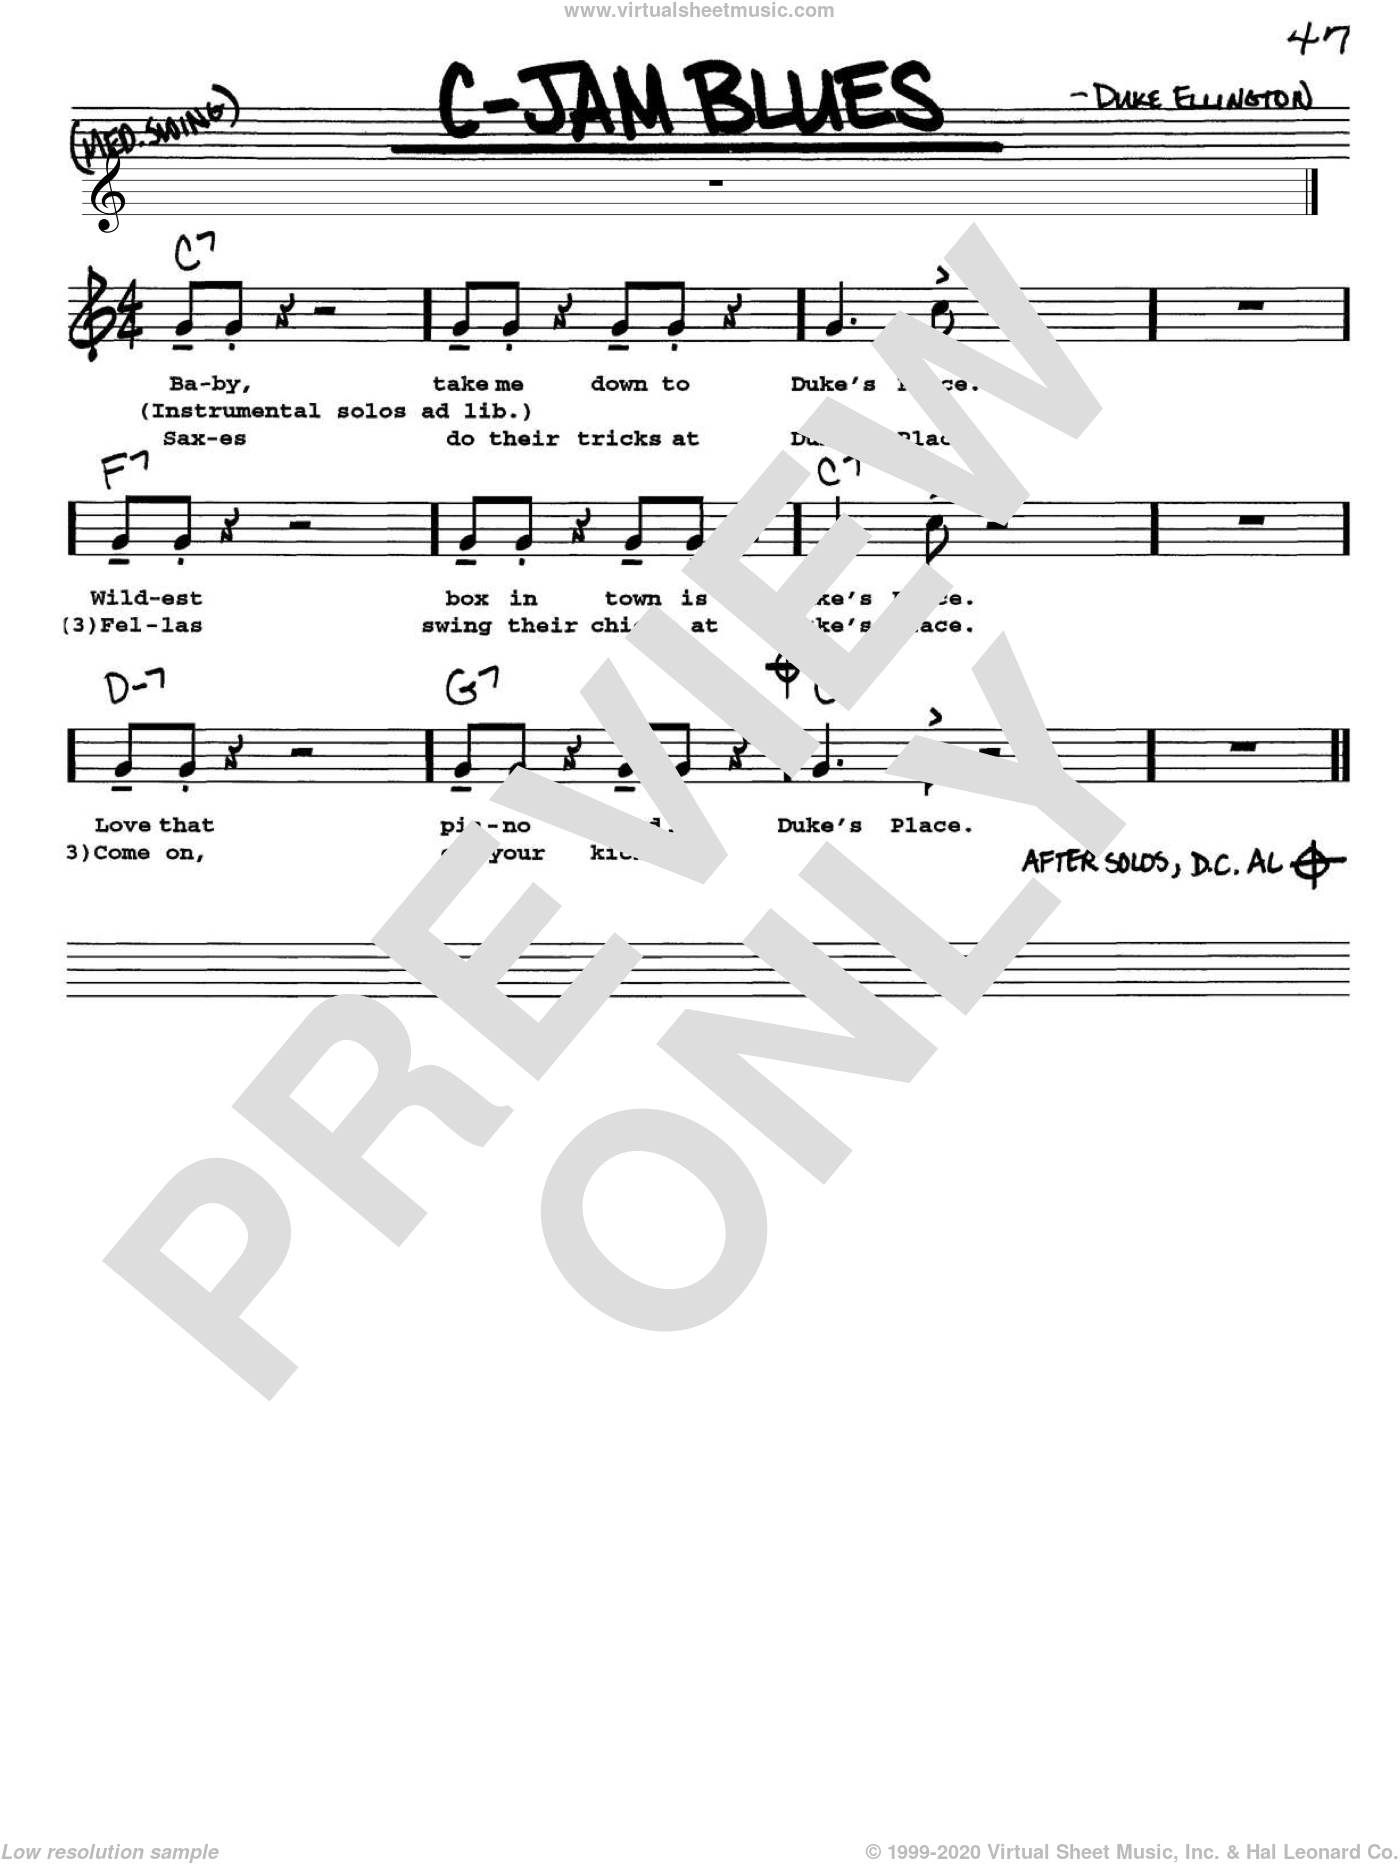 C-Jam Blues sheet music for voice and other instruments (Vocal Volume 1) by Duke Ellington